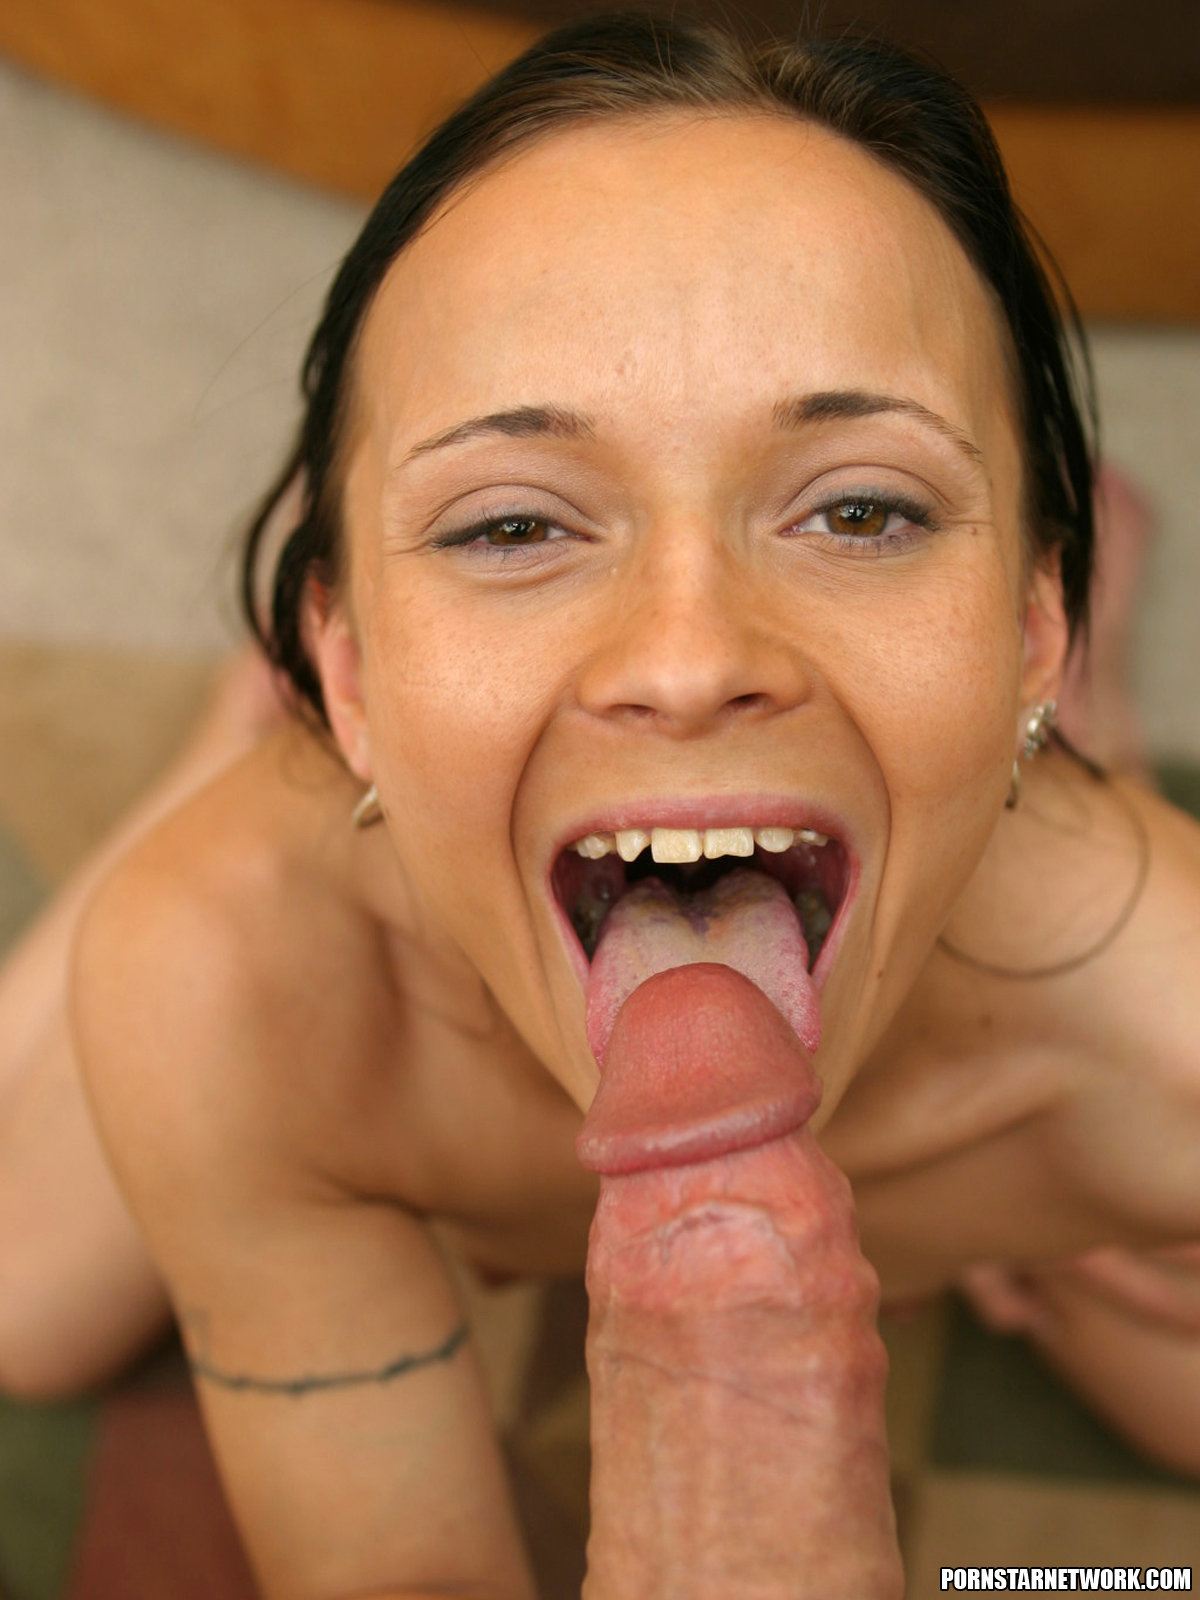 image Big load in mouth with massive black cock